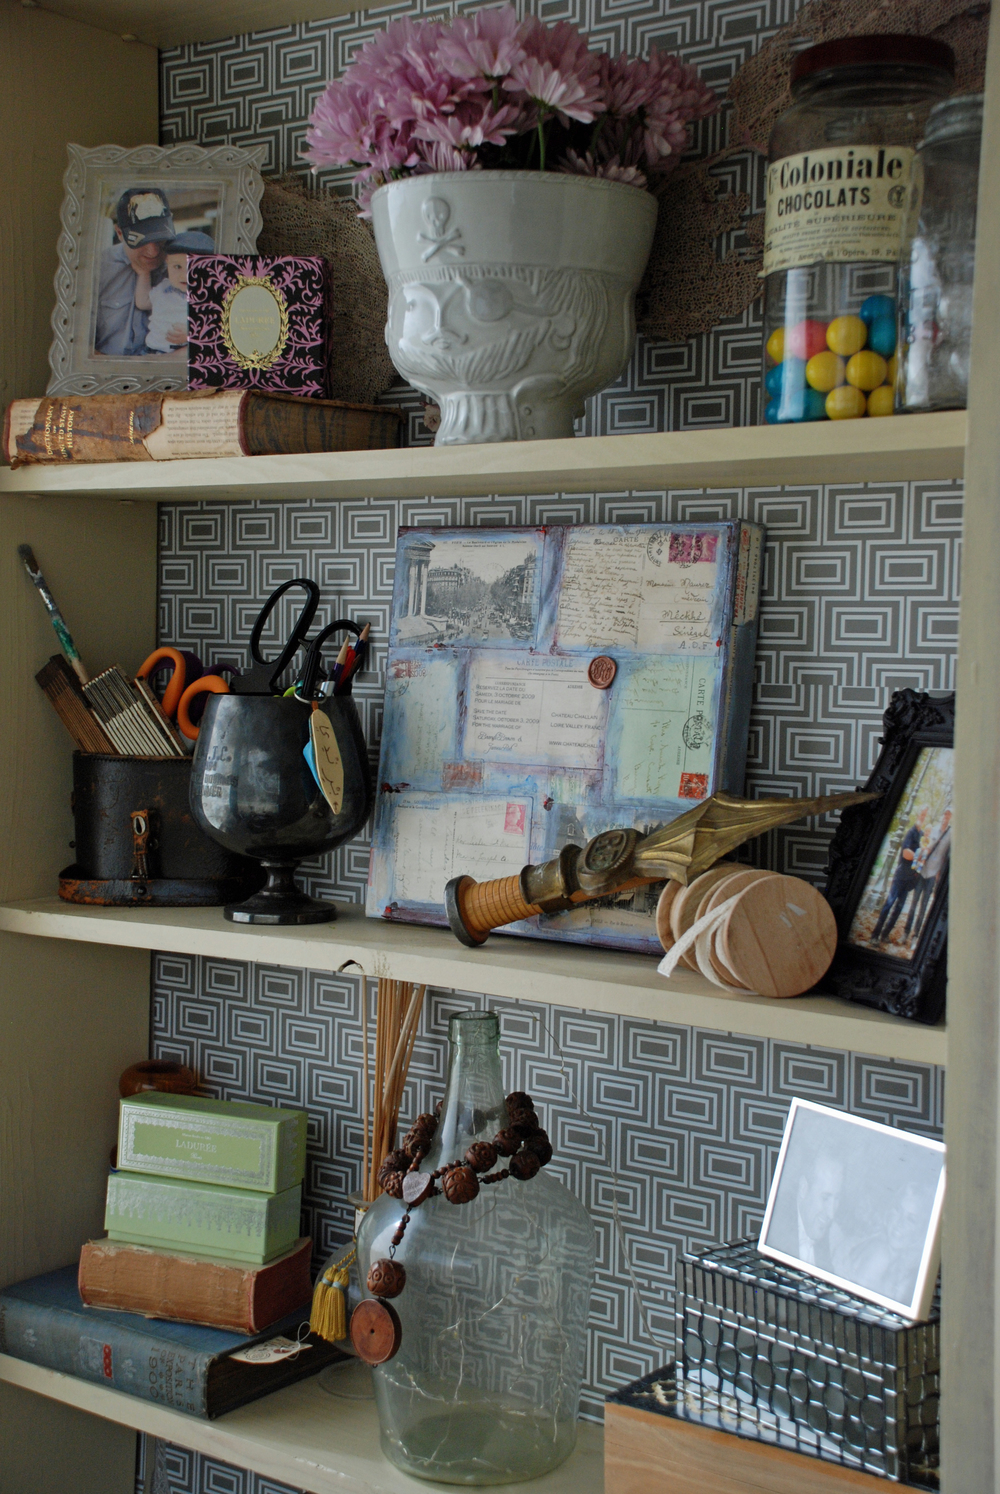 Bookshelf layered with travel mementos turned storage